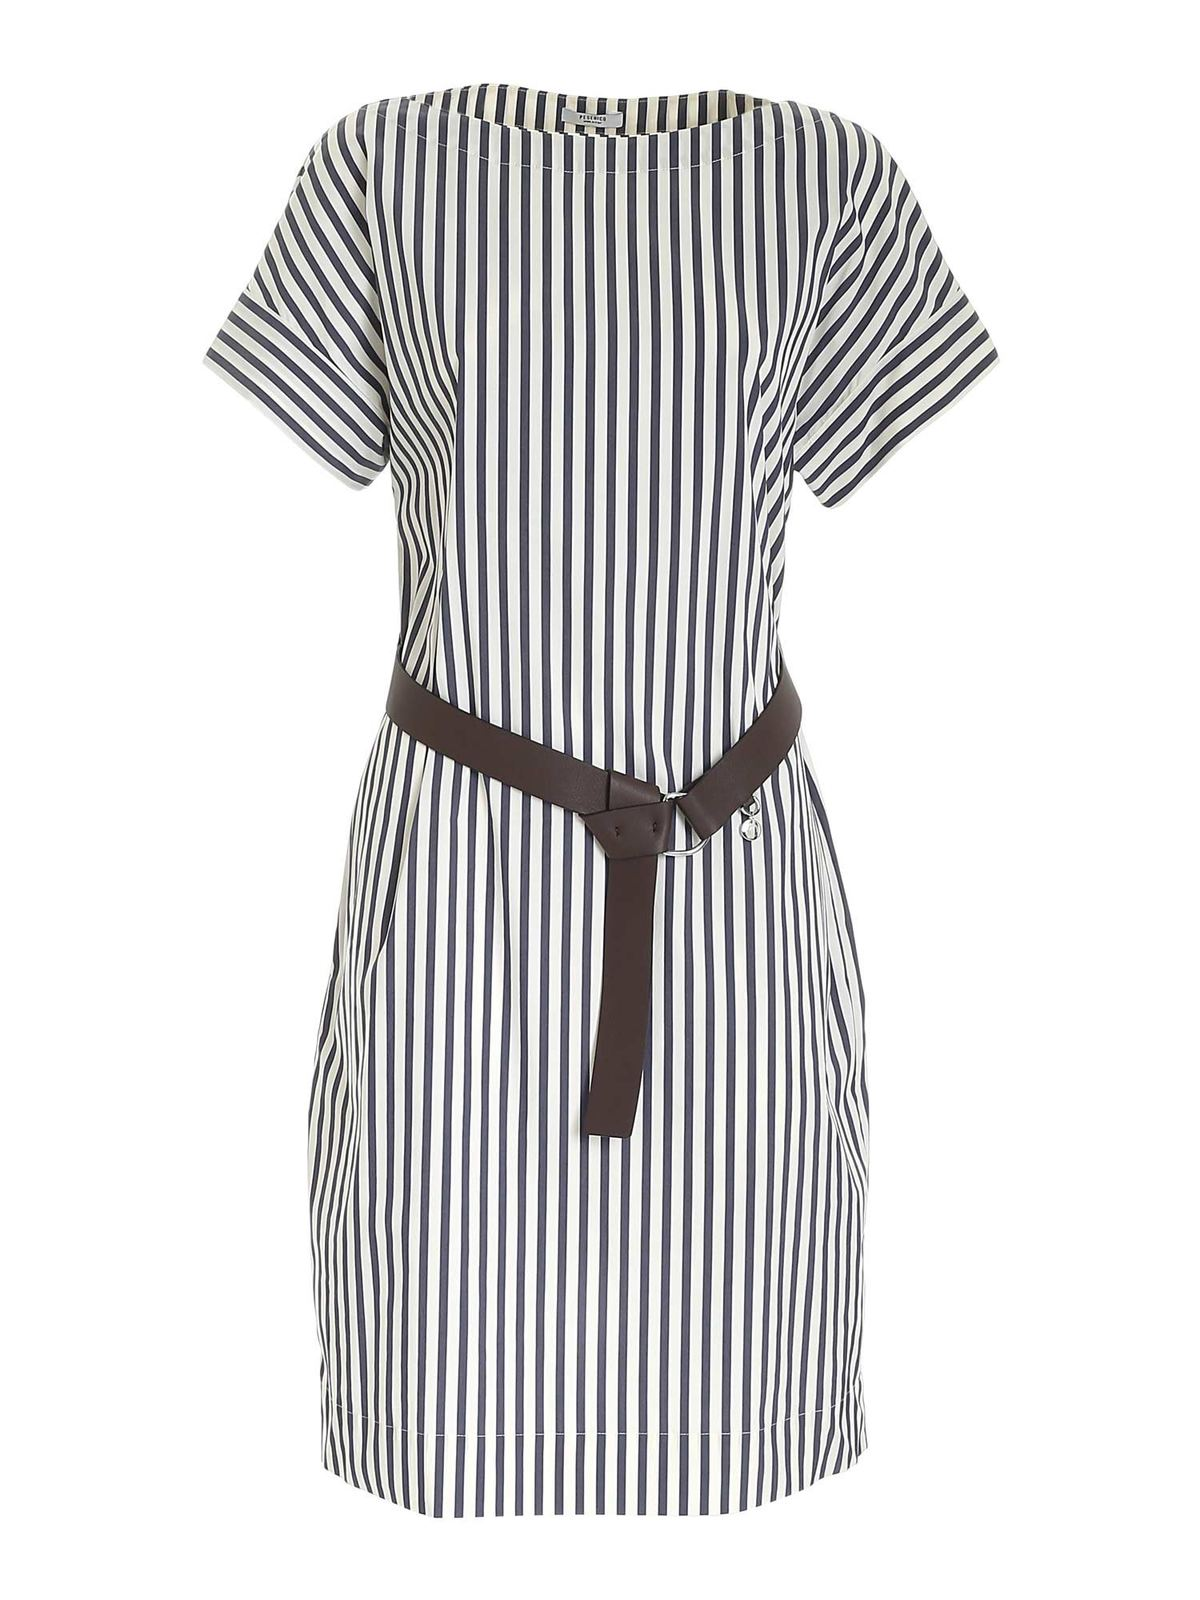 Peserico STRIPED DRESS IN WHITE AND BLUE